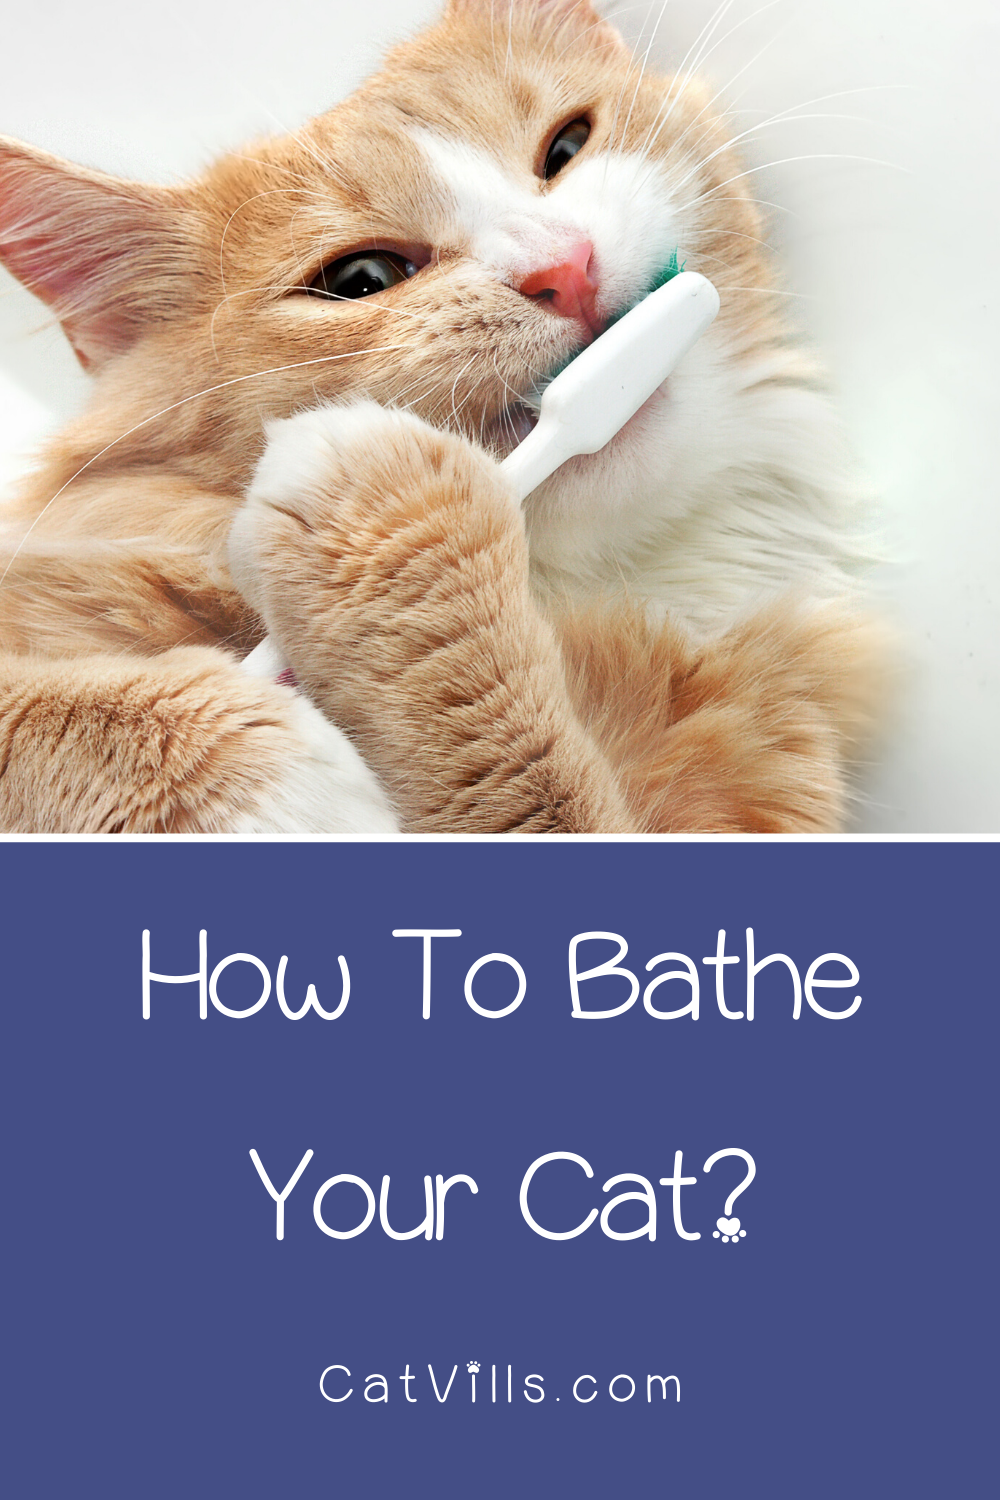 Bathe your cat? No, seriously! Stop laughing! You totally